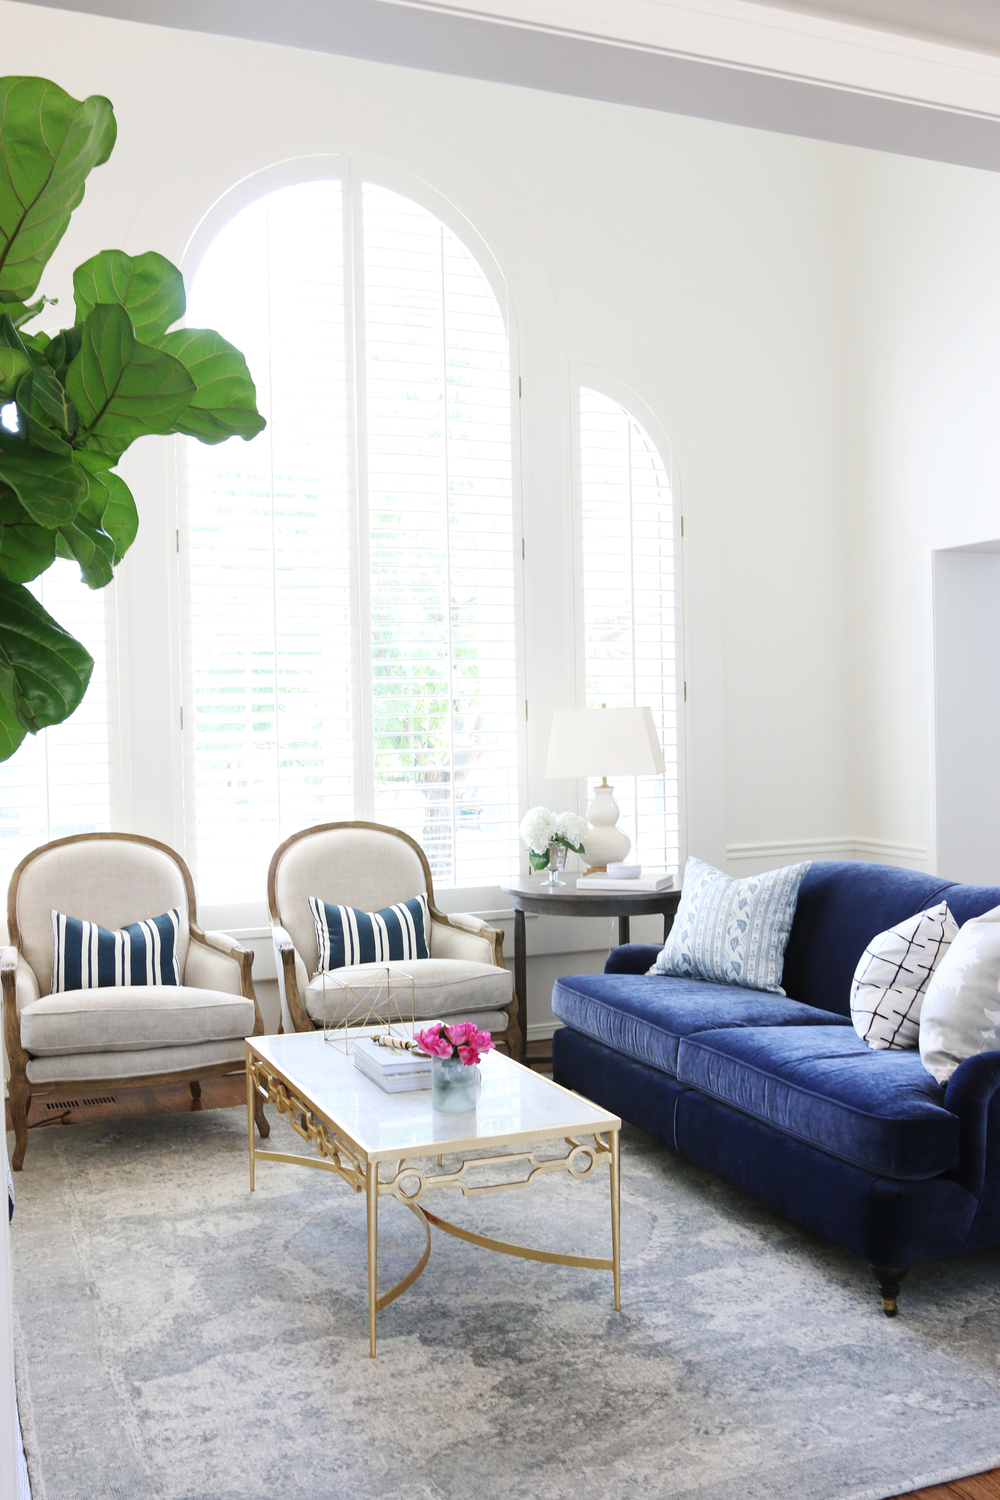 Blue couch and white chairs with blue & white striped pillows